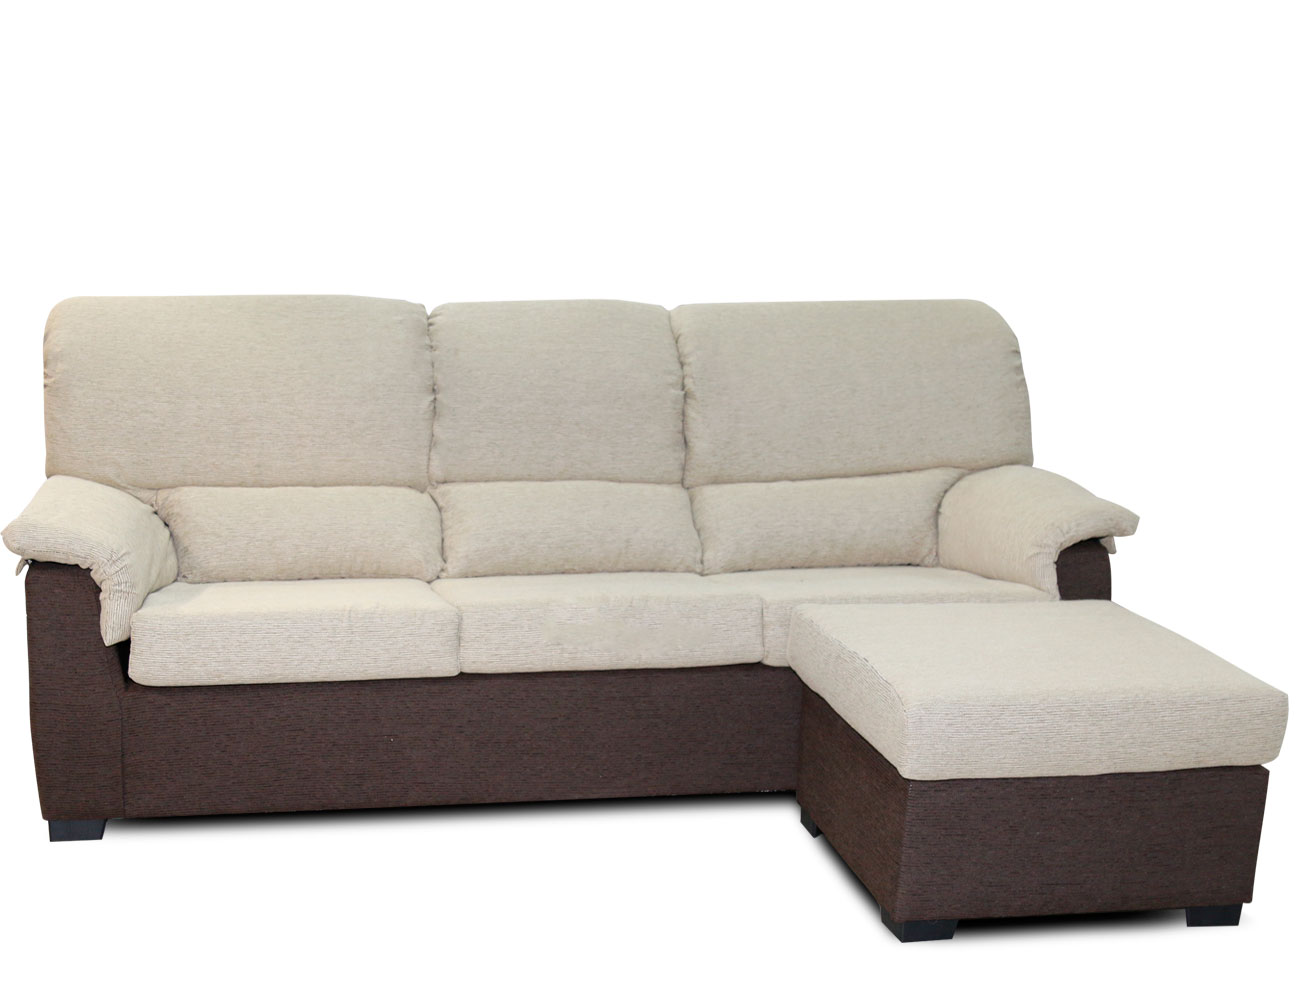 Sof chaiselongue barato con puf reversible 15285 factory del mueble utrera - Sofas arabes baratos ...